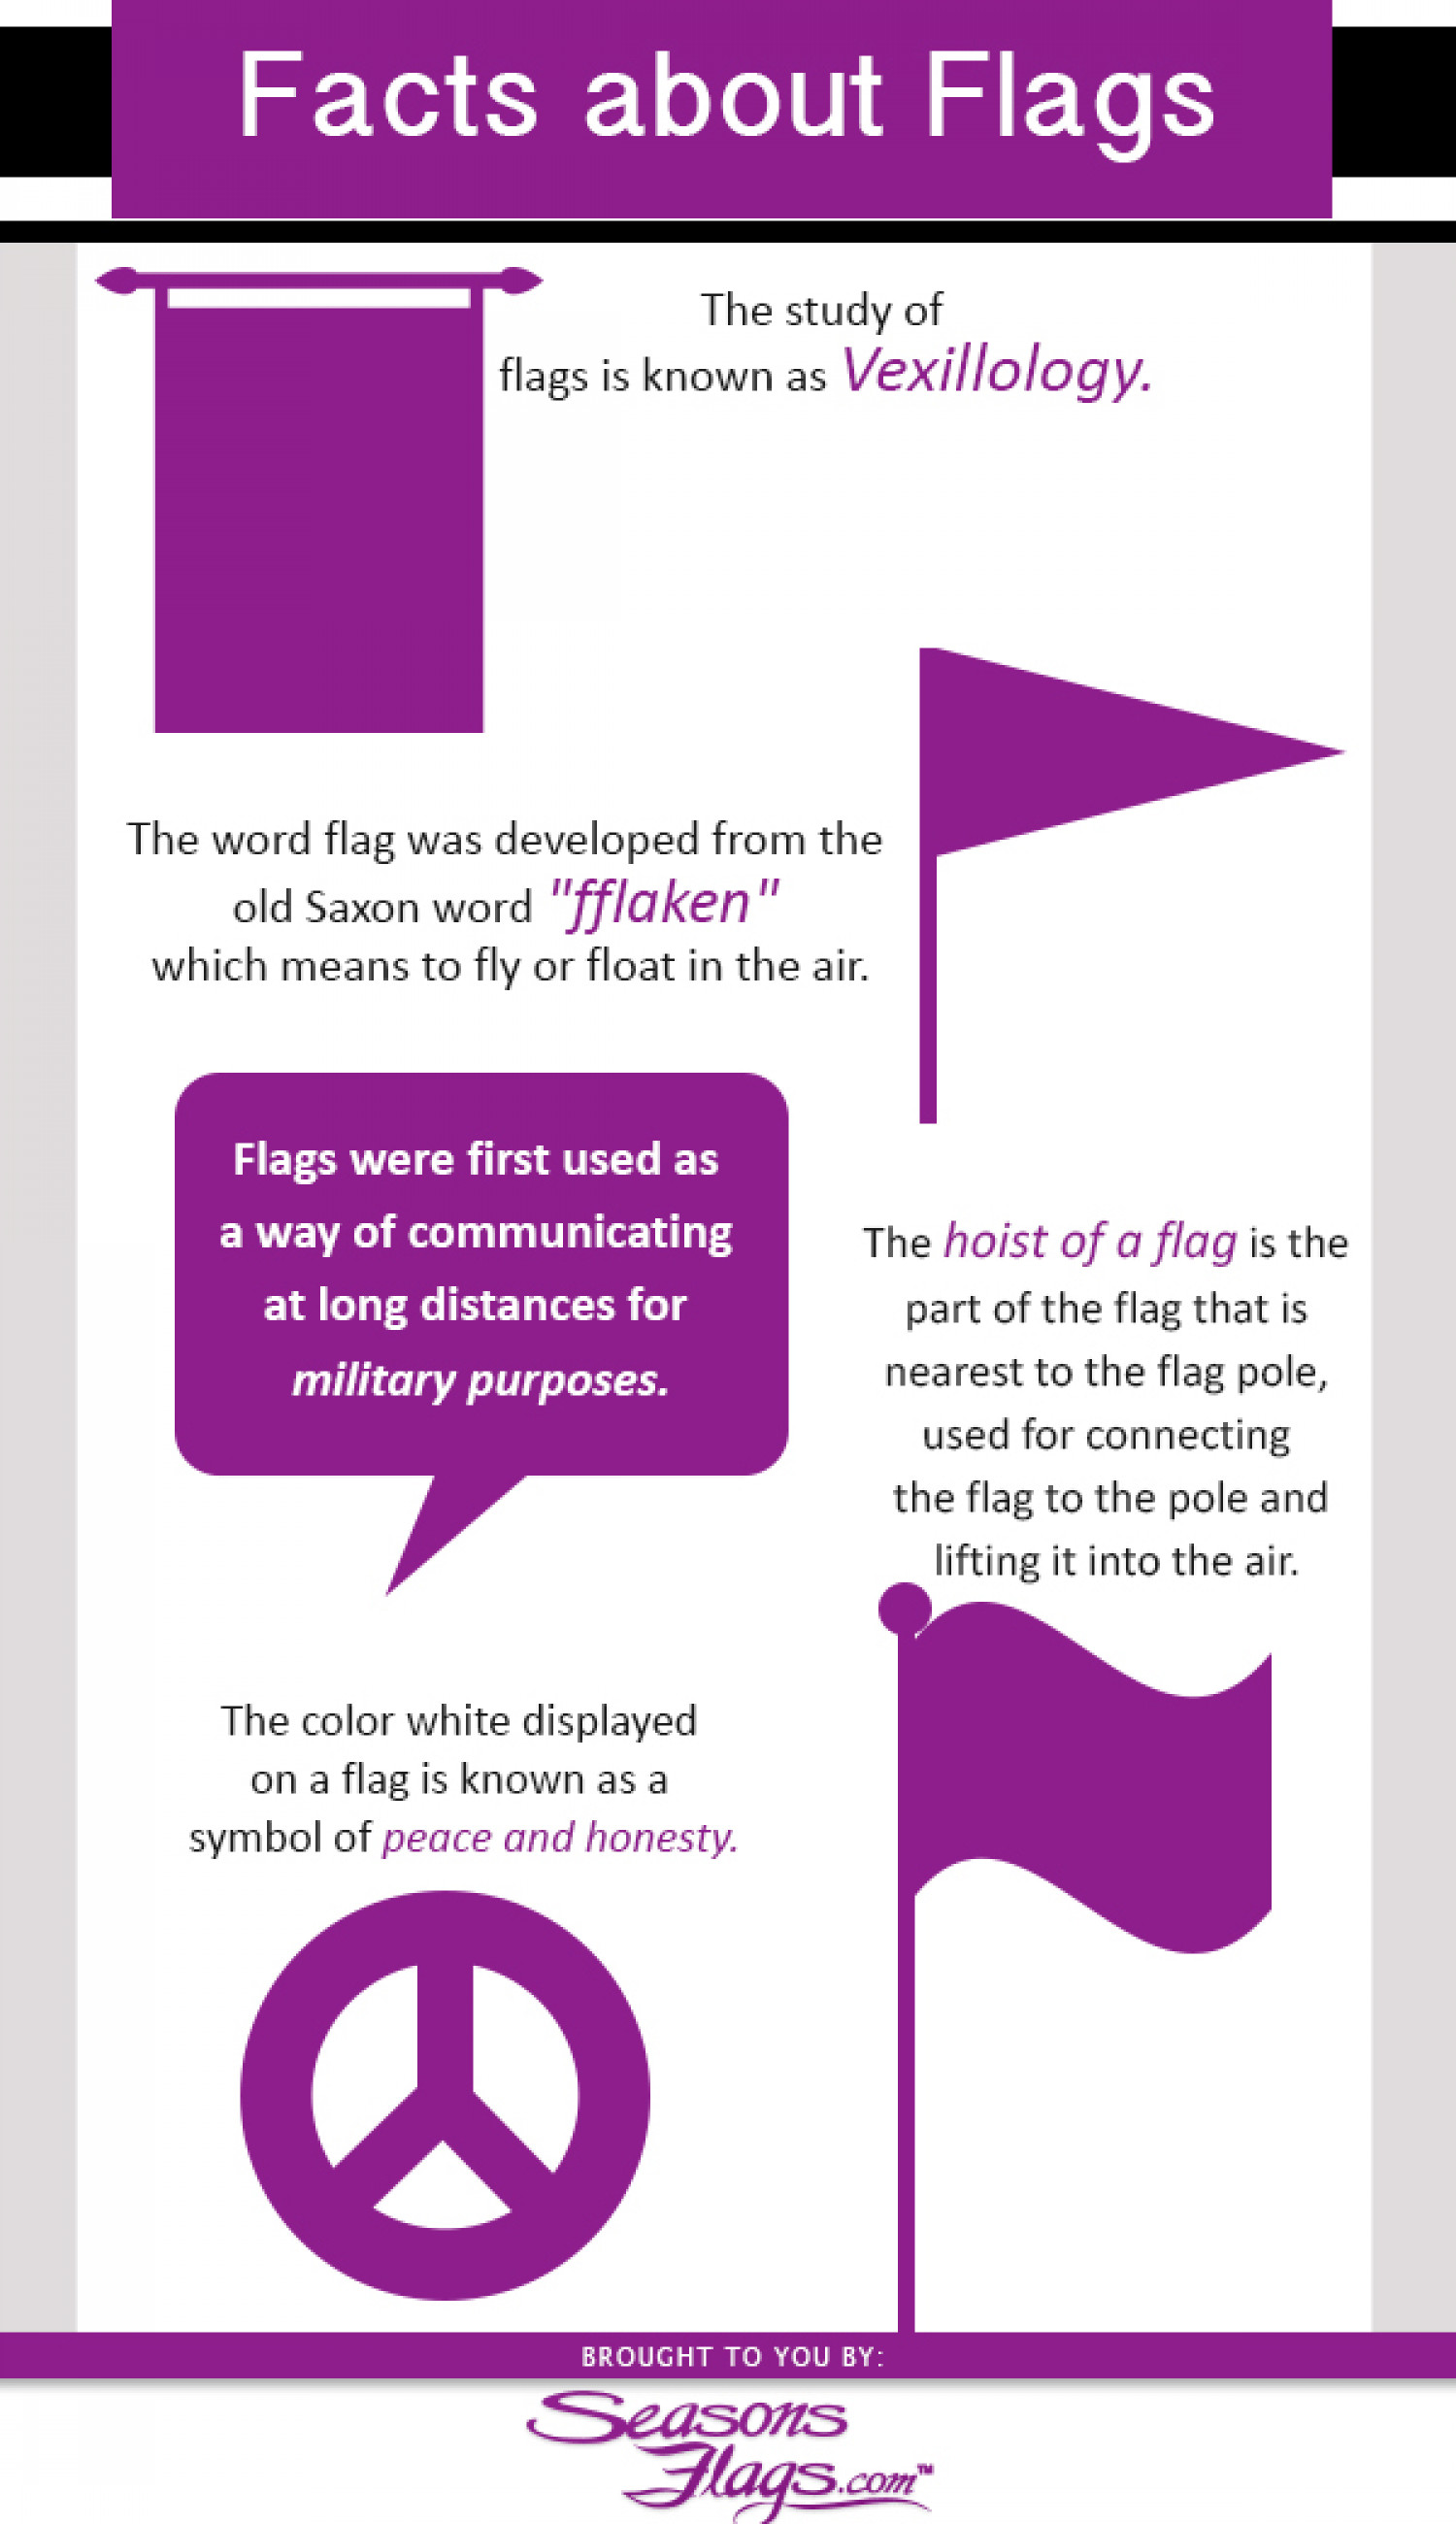 Facts About Flags Infographic